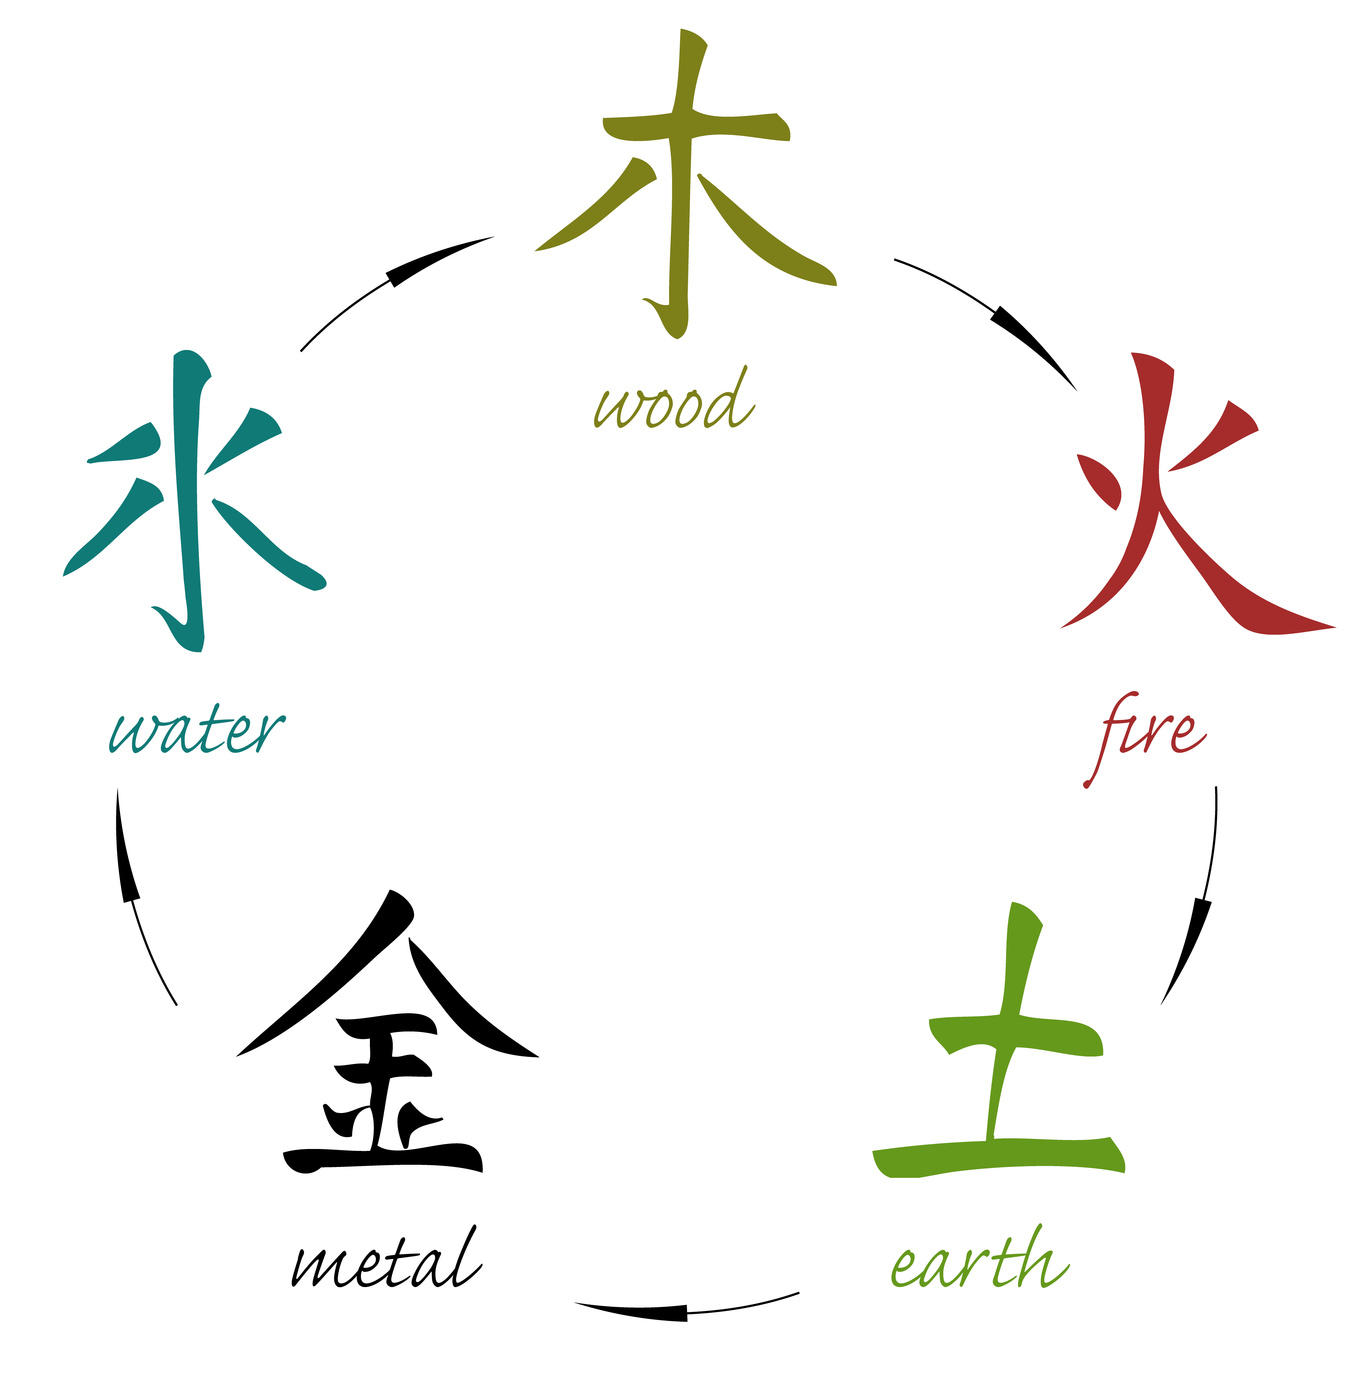 How To Use 5 Elements Qigong To Harmonize Your Body, Mind & Spirit